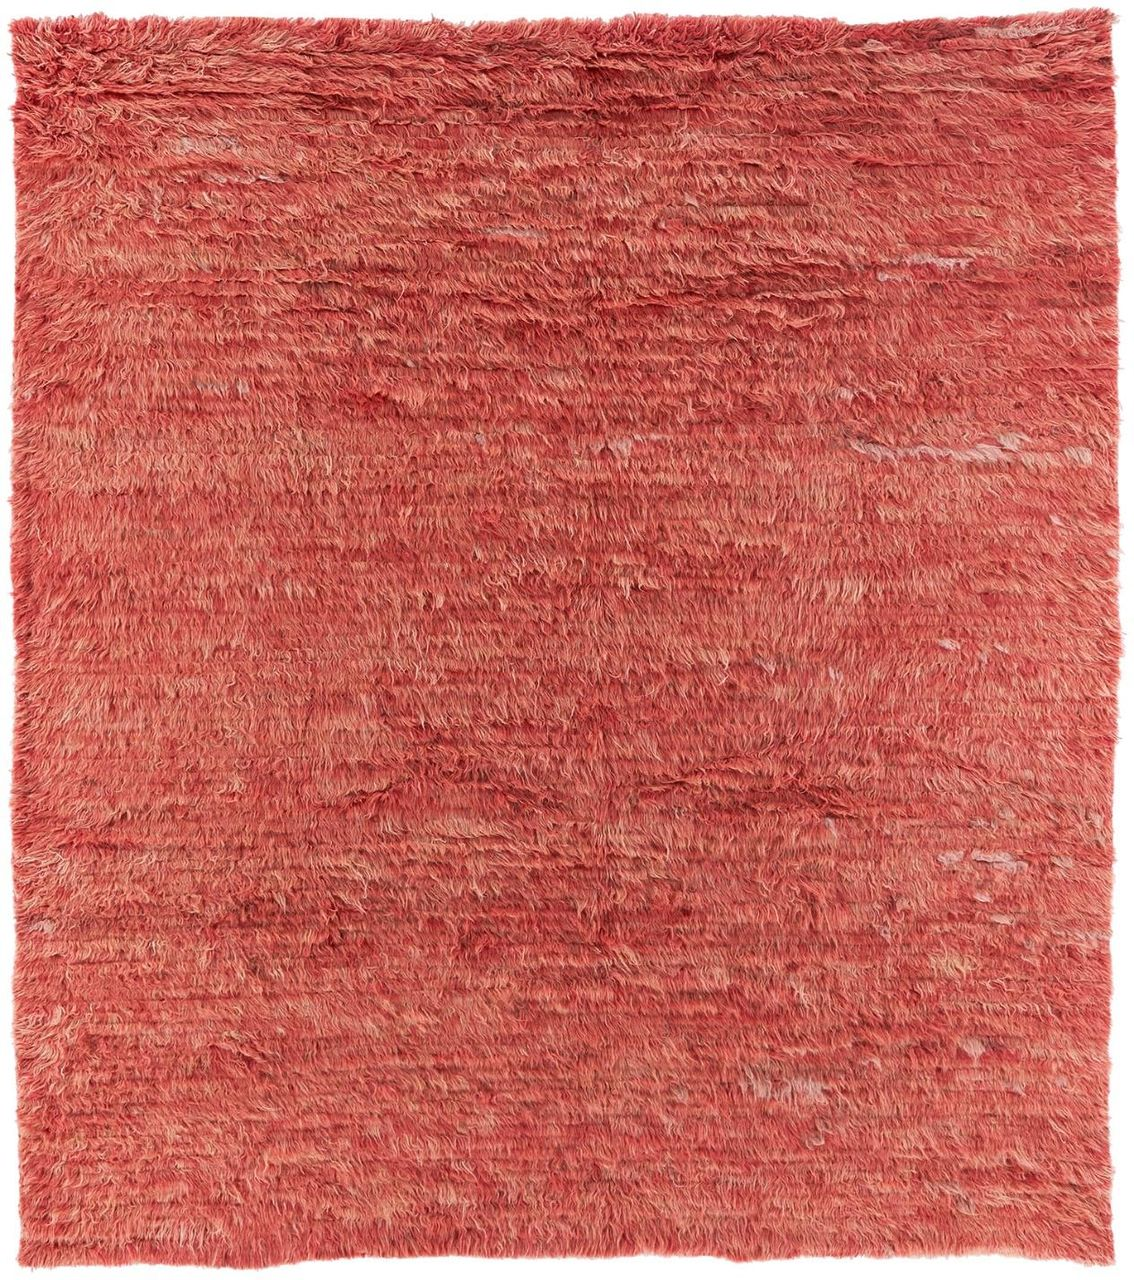 Barchi Pink Rug by Halcyon Lakes